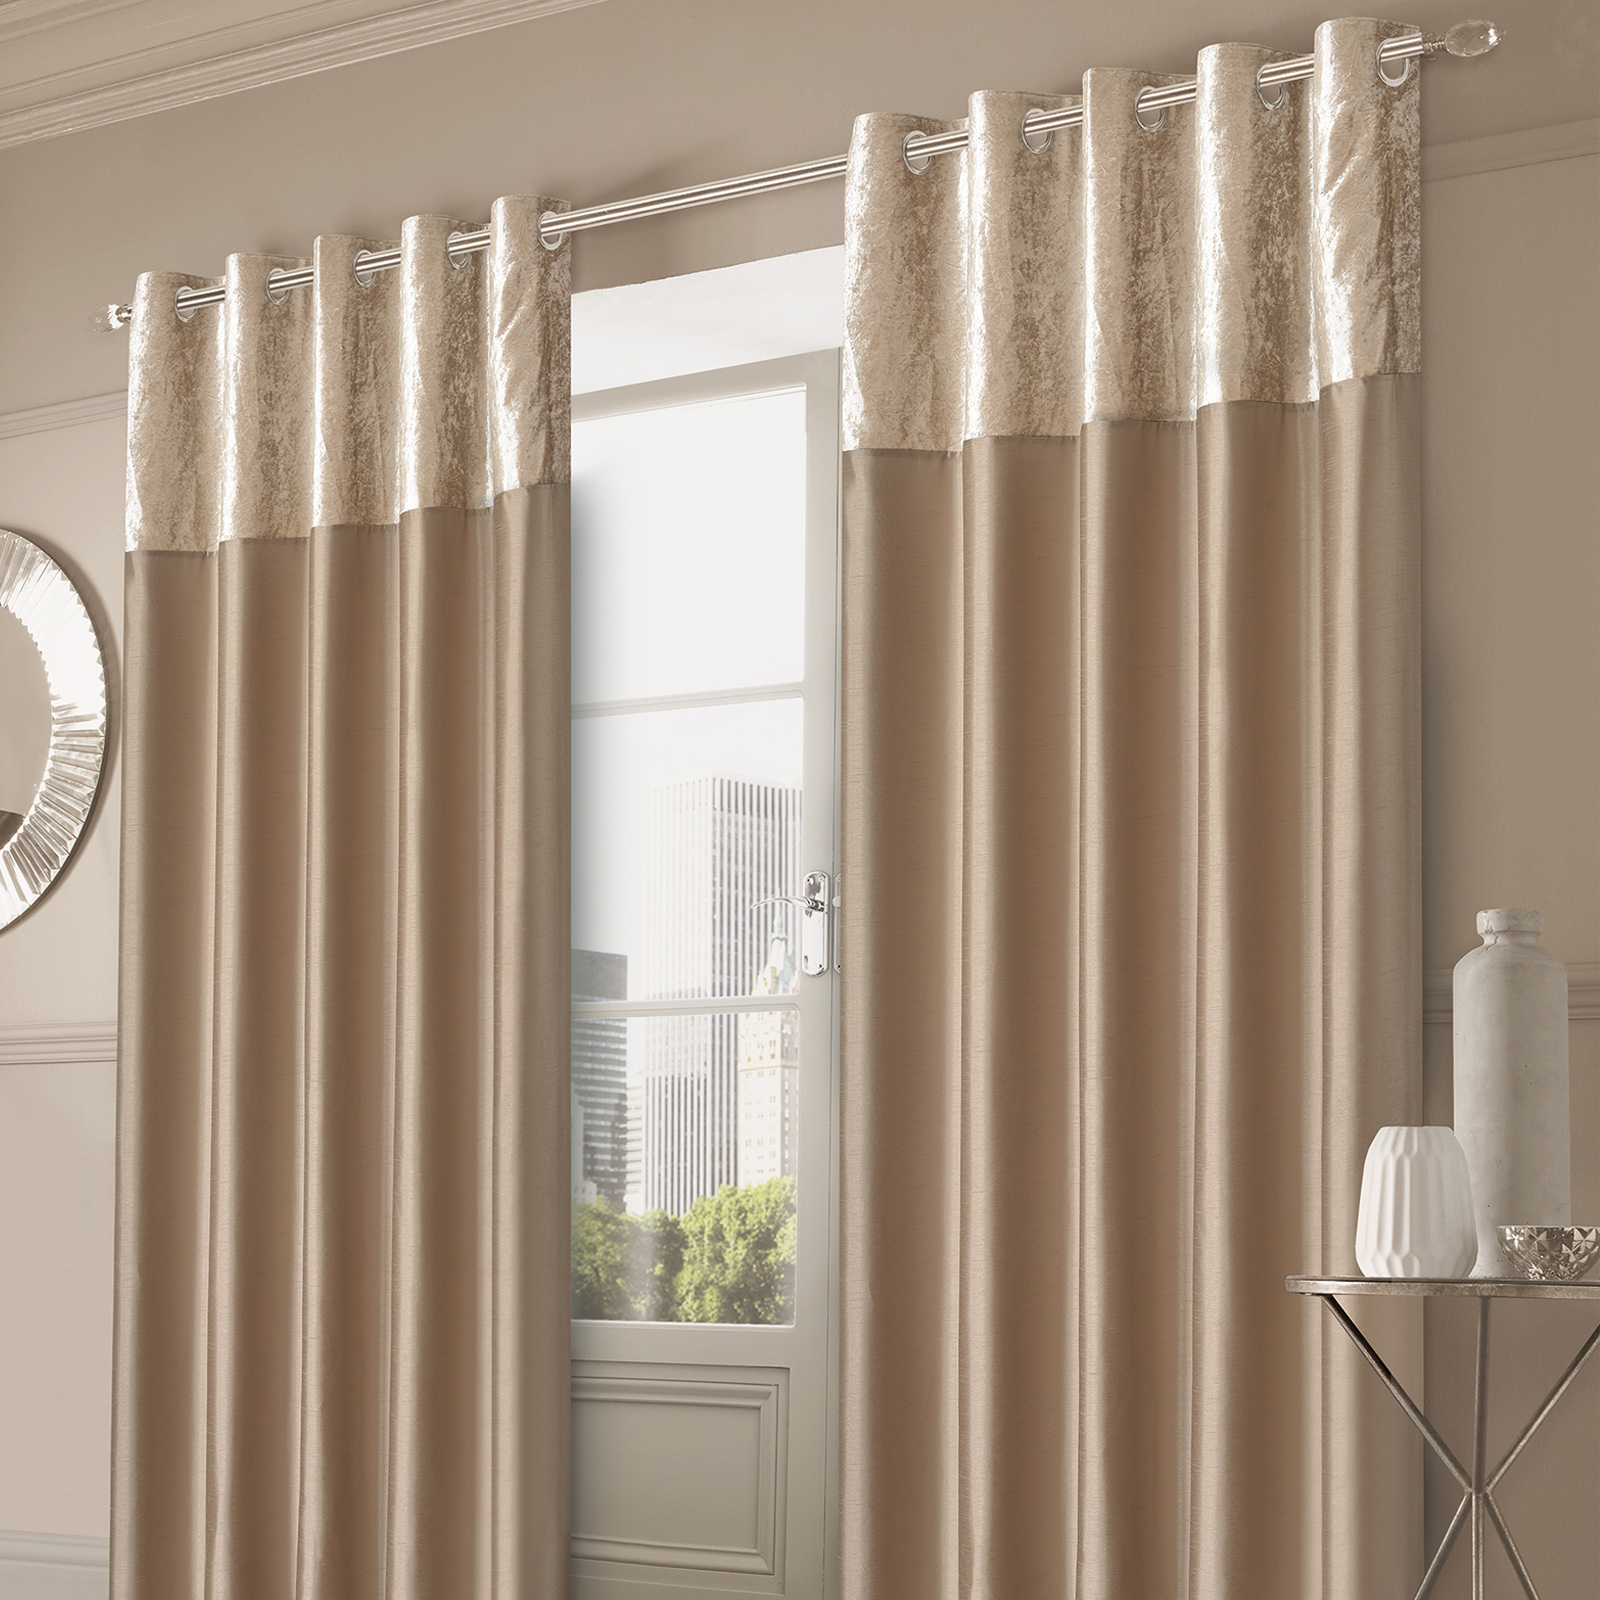 Sienna Crushed Velvet Band Curtains Pair Eyelet Faux Silk